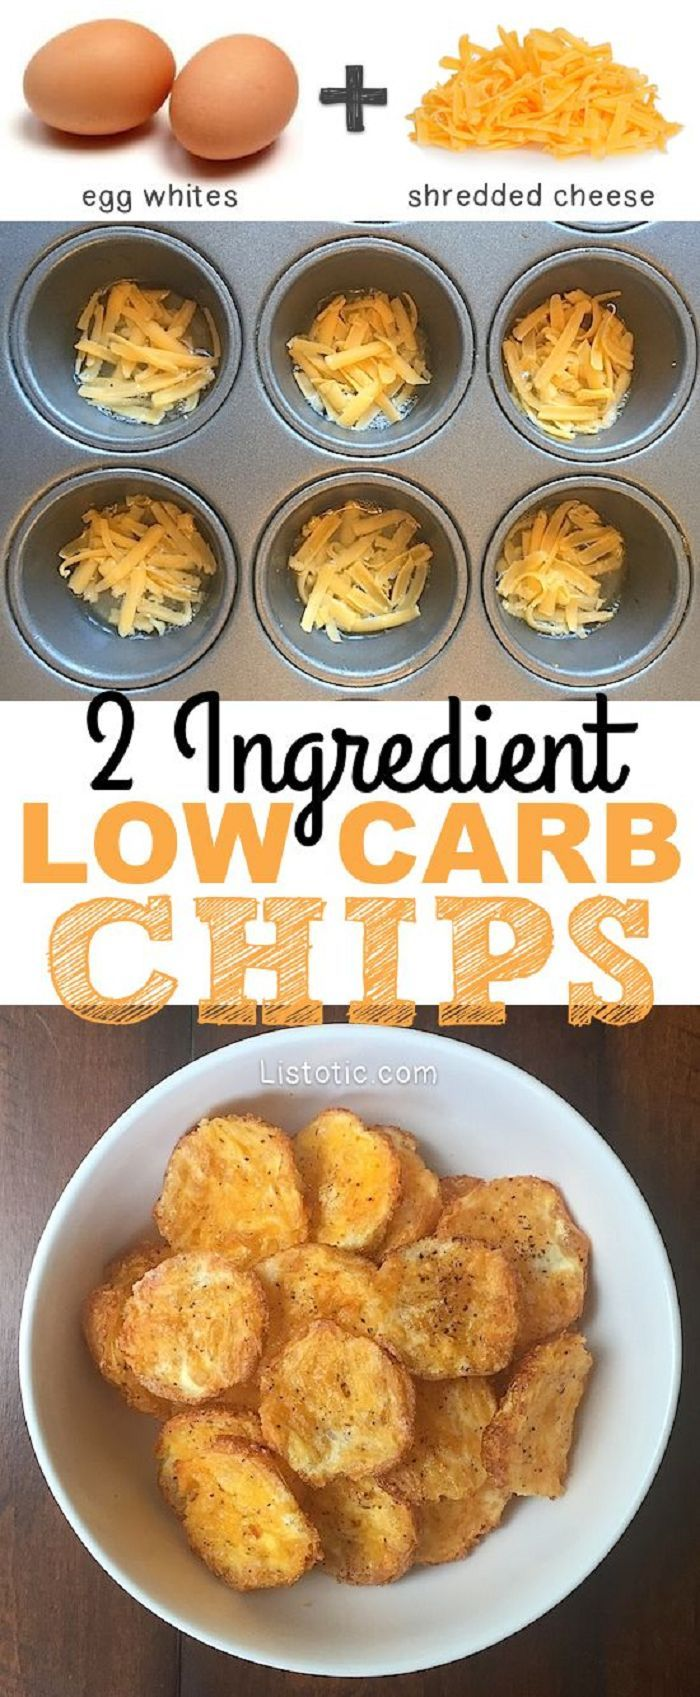 2 Ingredient Low Carb Chips Recipe Easy Snack Recipes Low